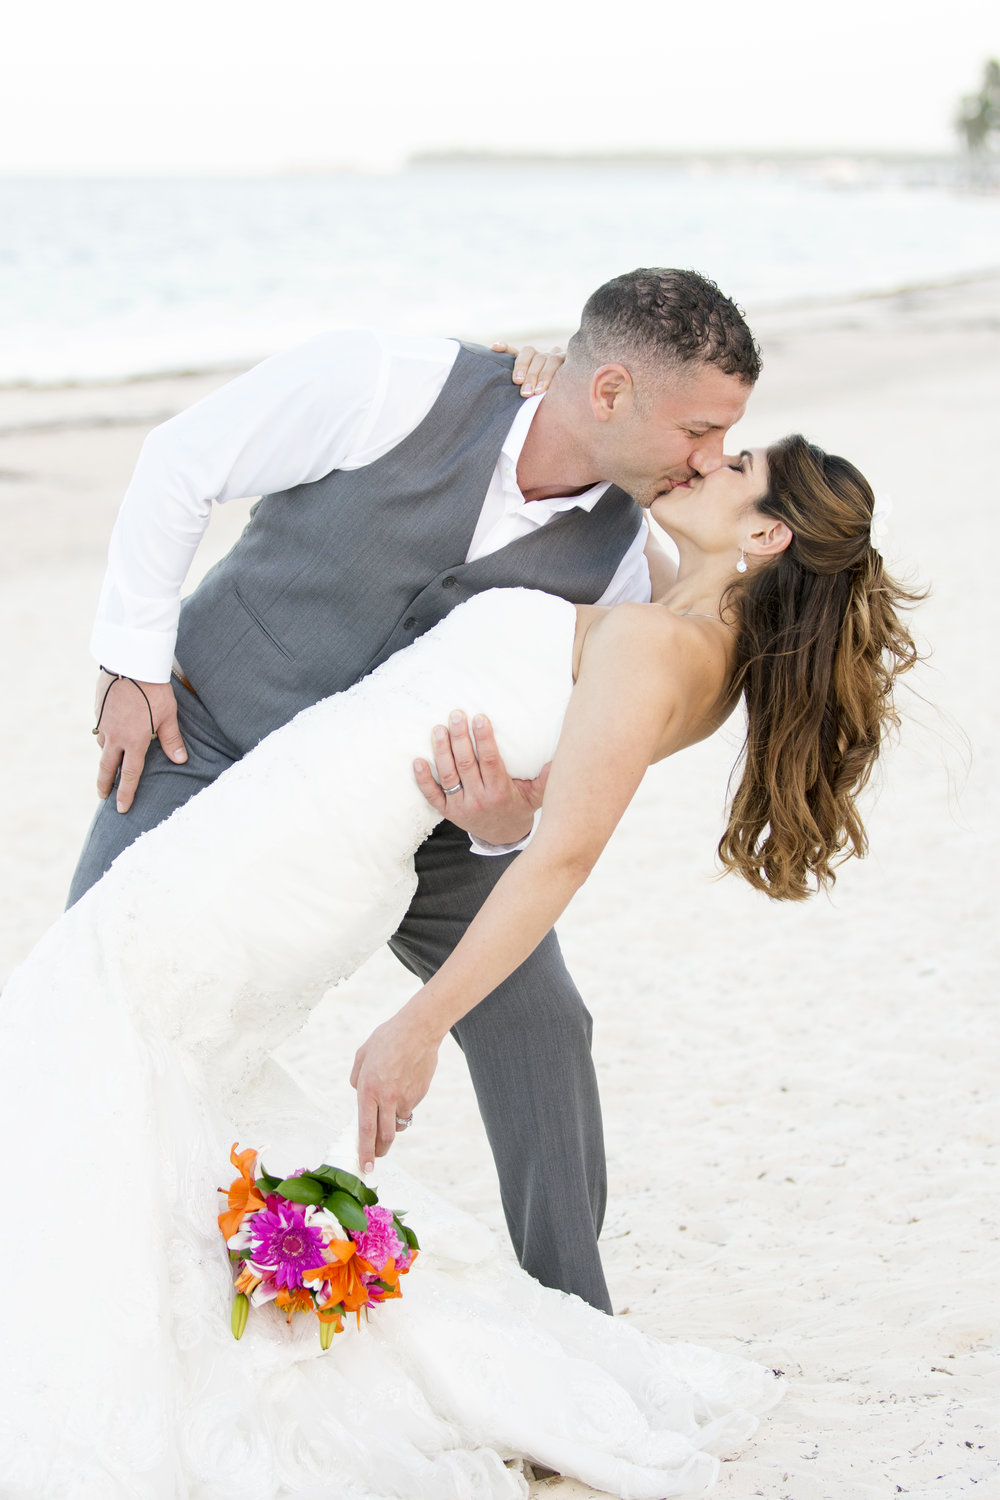 Andrea + Arash's Island Destination Wedding in the Dominican Republic